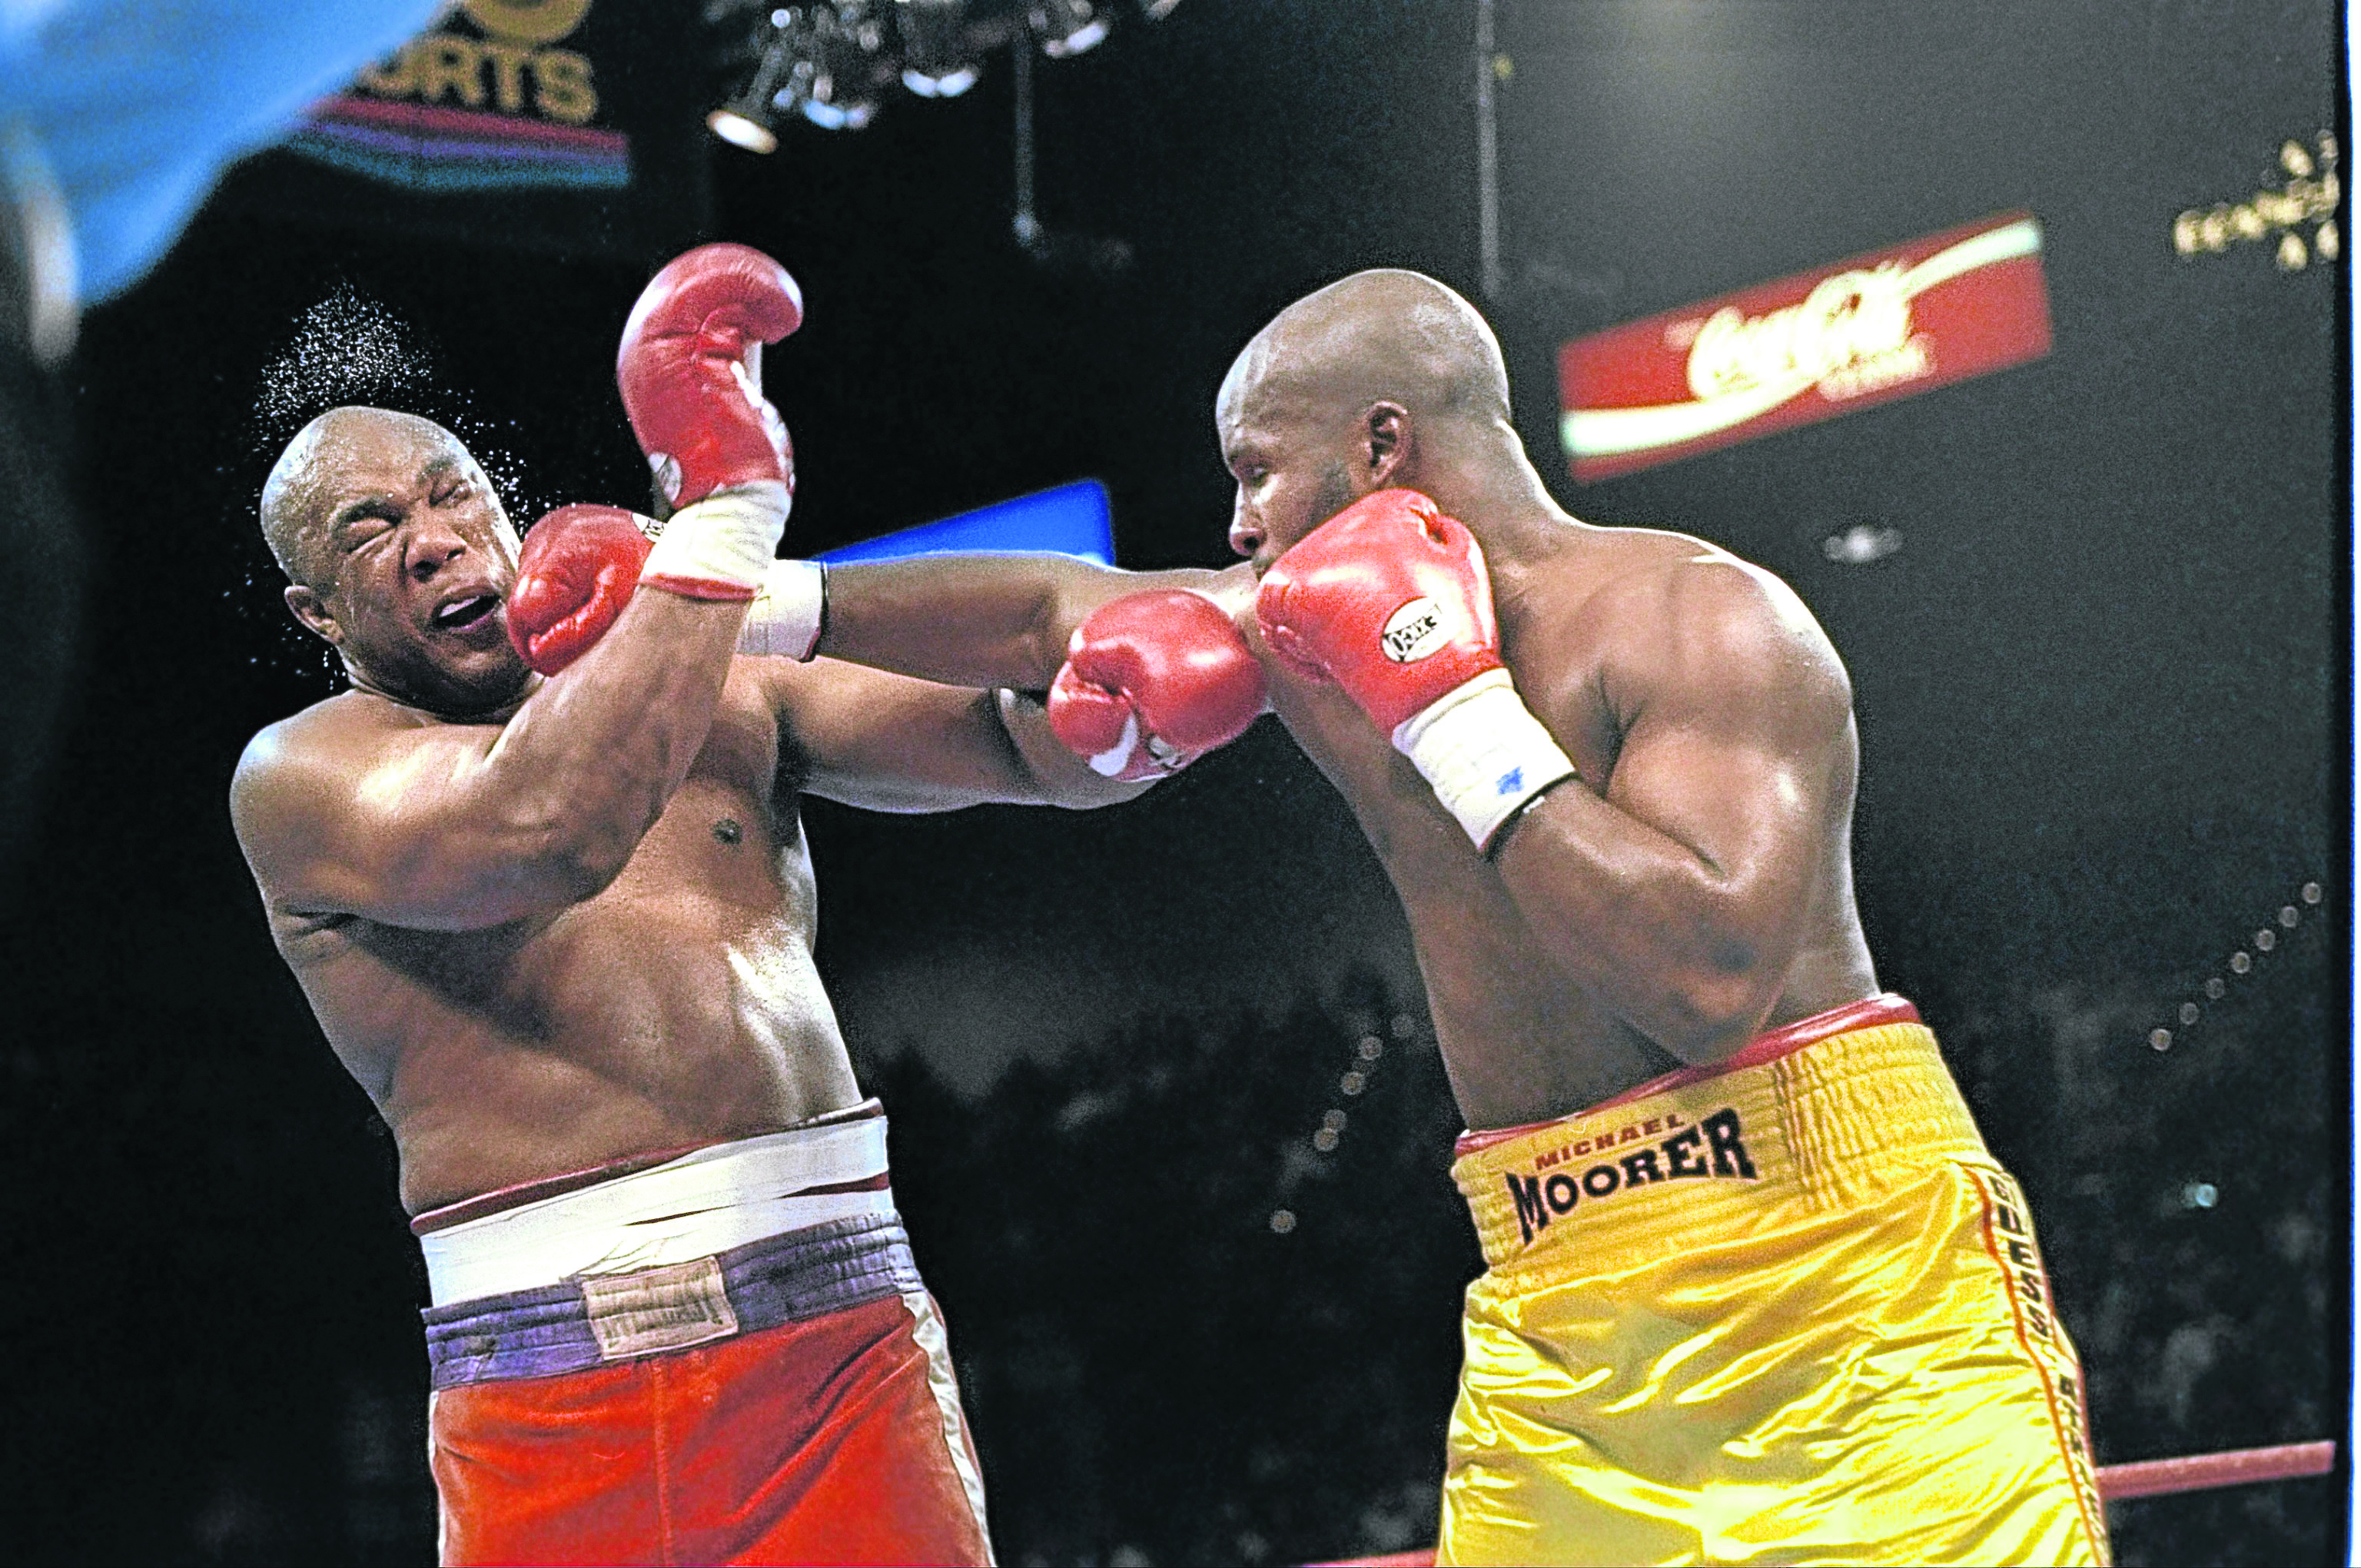 The way that the 45-year-old George Foreman, left, came back from this battering by Michael Moorer in Las Vegas 24 years ago has inspired the theme of the Energy Voice event